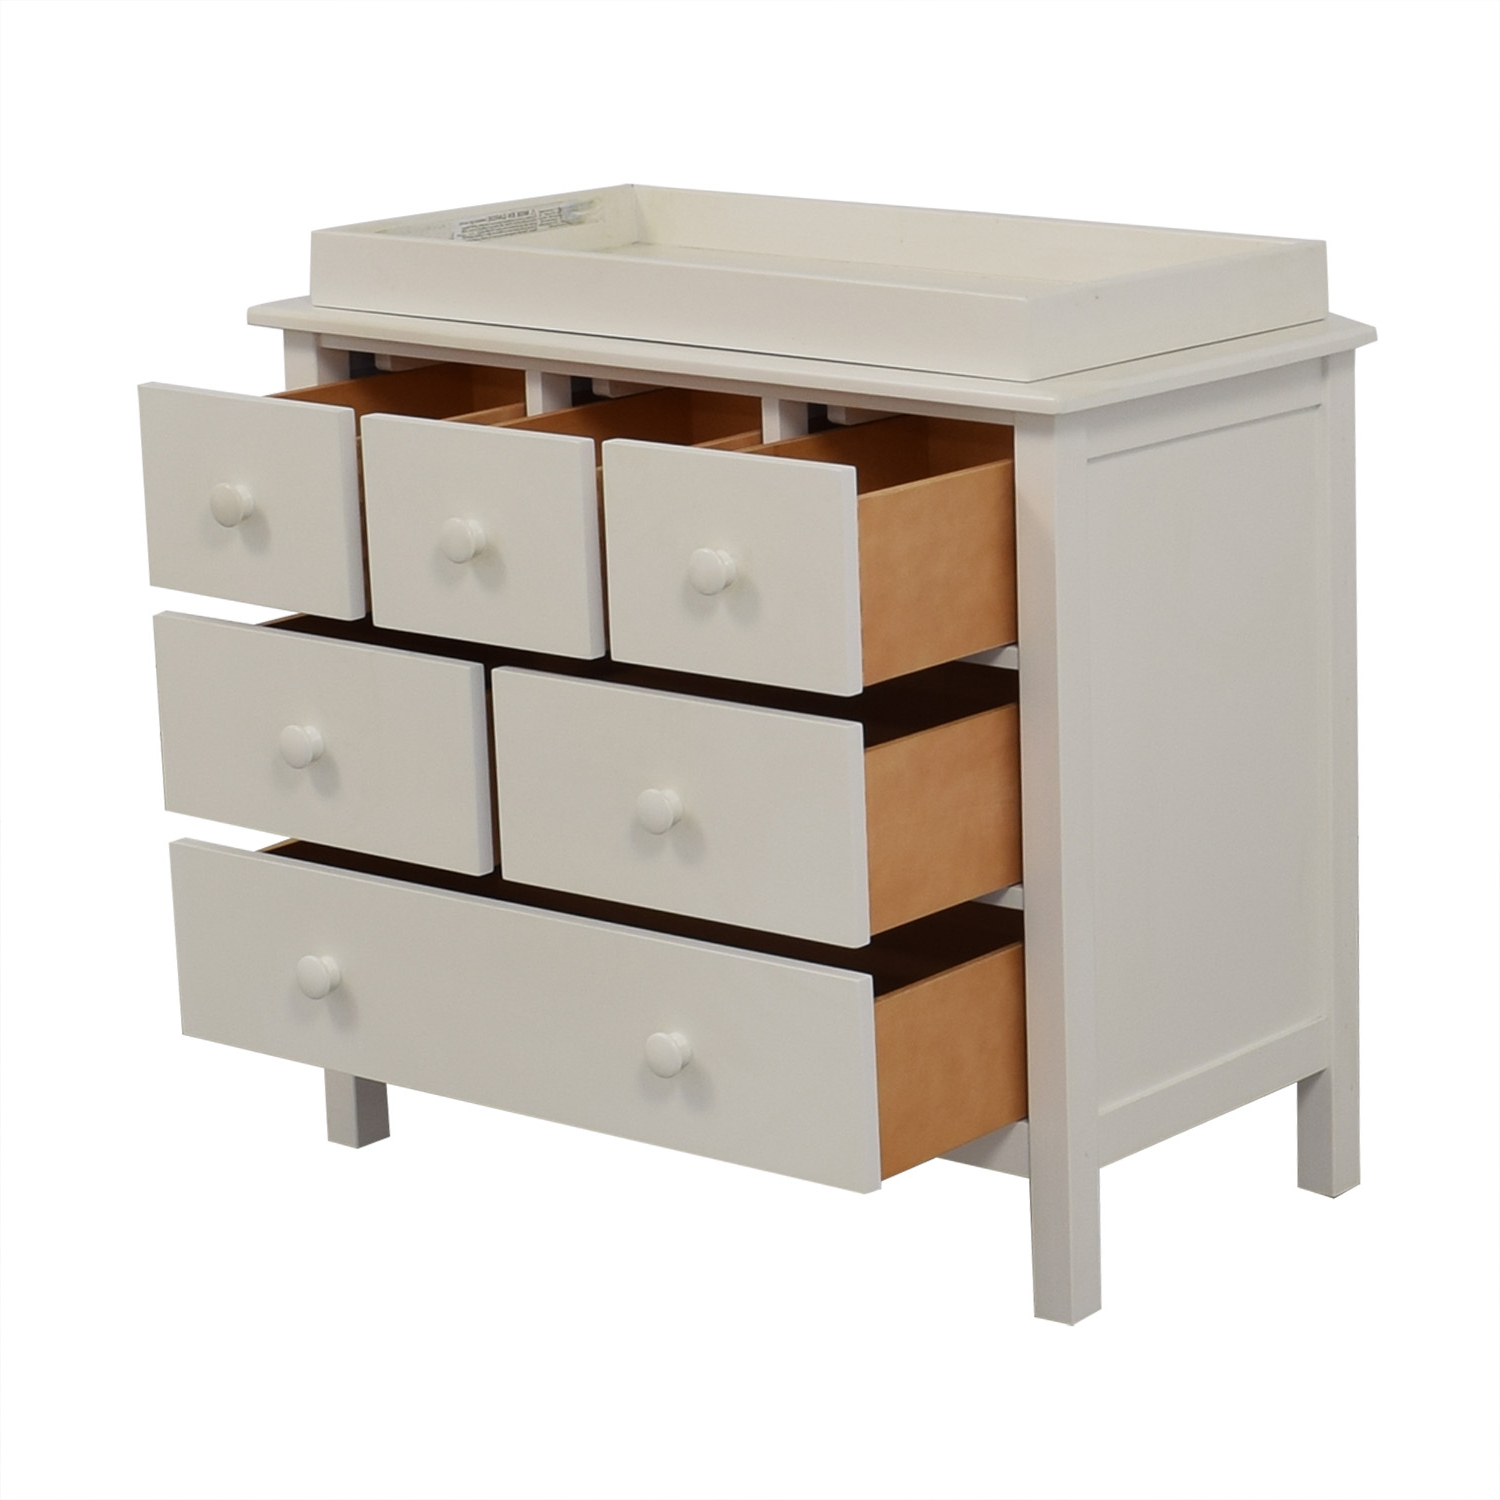 [%72% Off – Pottery Barn Kids Pottery Barn Kids Kendall Dresser And Changing  Table / Storage Pertaining To Well Liked Kendall Sideboards|Kendall Sideboards Regarding Preferred 72% Off – Pottery Barn Kids Pottery Barn Kids Kendall Dresser And Changing  Table / Storage|2020 Kendall Sideboards Pertaining To 72% Off – Pottery Barn Kids Pottery Barn Kids Kendall Dresser And Changing  Table / Storage|2020 72% Off – Pottery Barn Kids Pottery Barn Kids Kendall Dresser And Changing  Table / Storage For Kendall Sideboards%] (View 2 of 20)